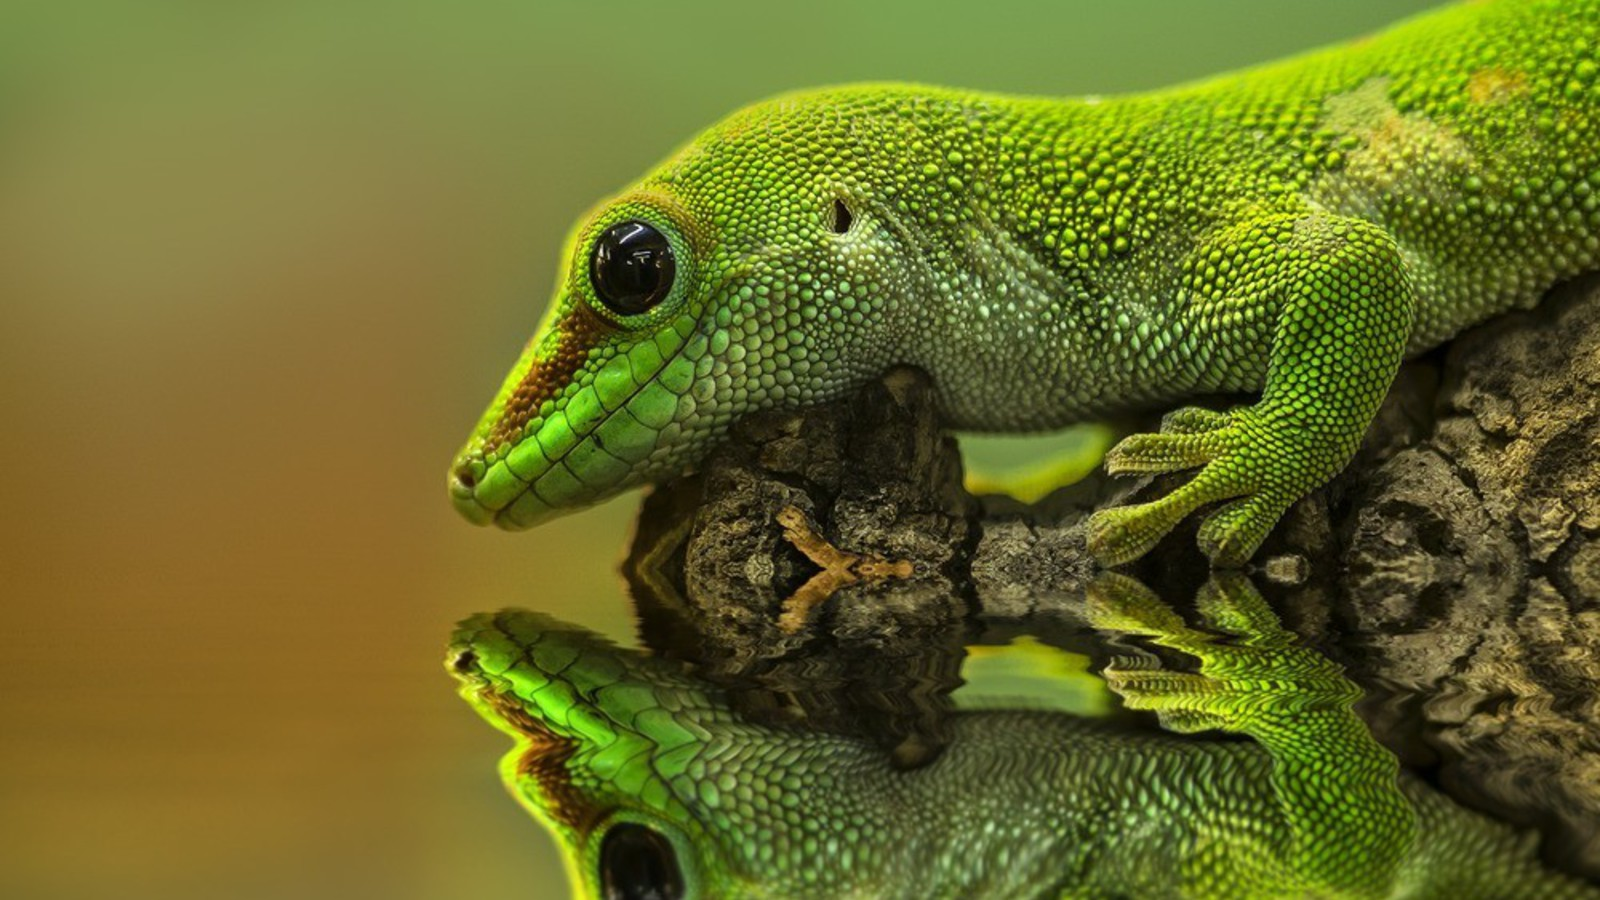 22 reptile hd wallpapers - photo #10